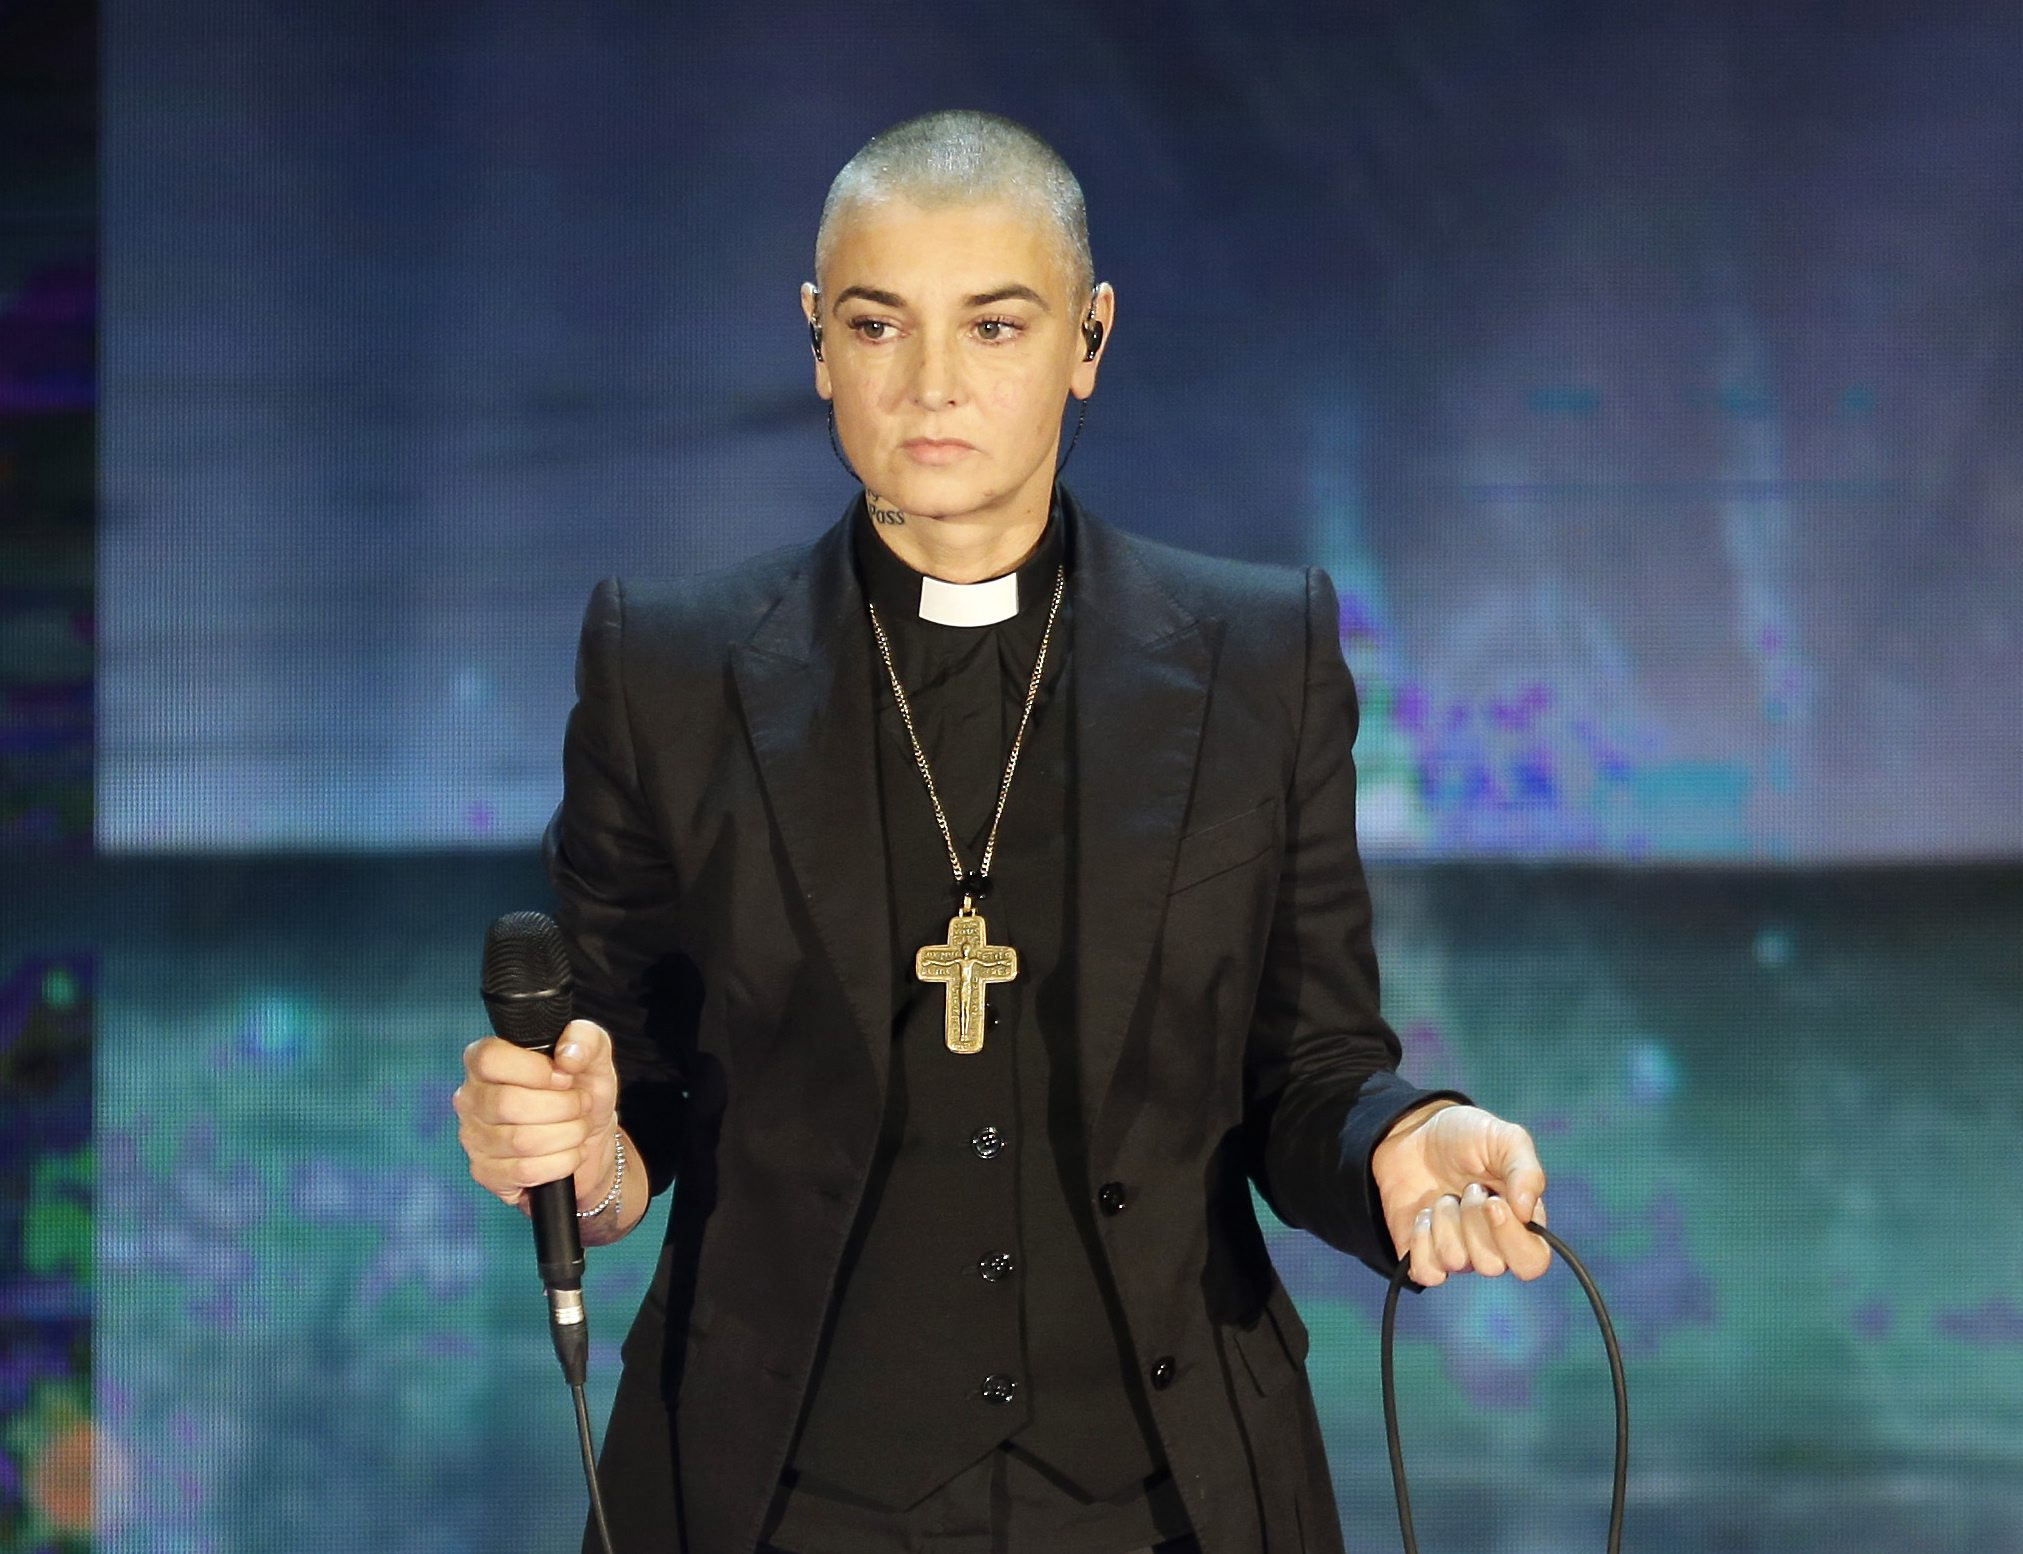 Police say Sinead O'Connor found safe, no details released